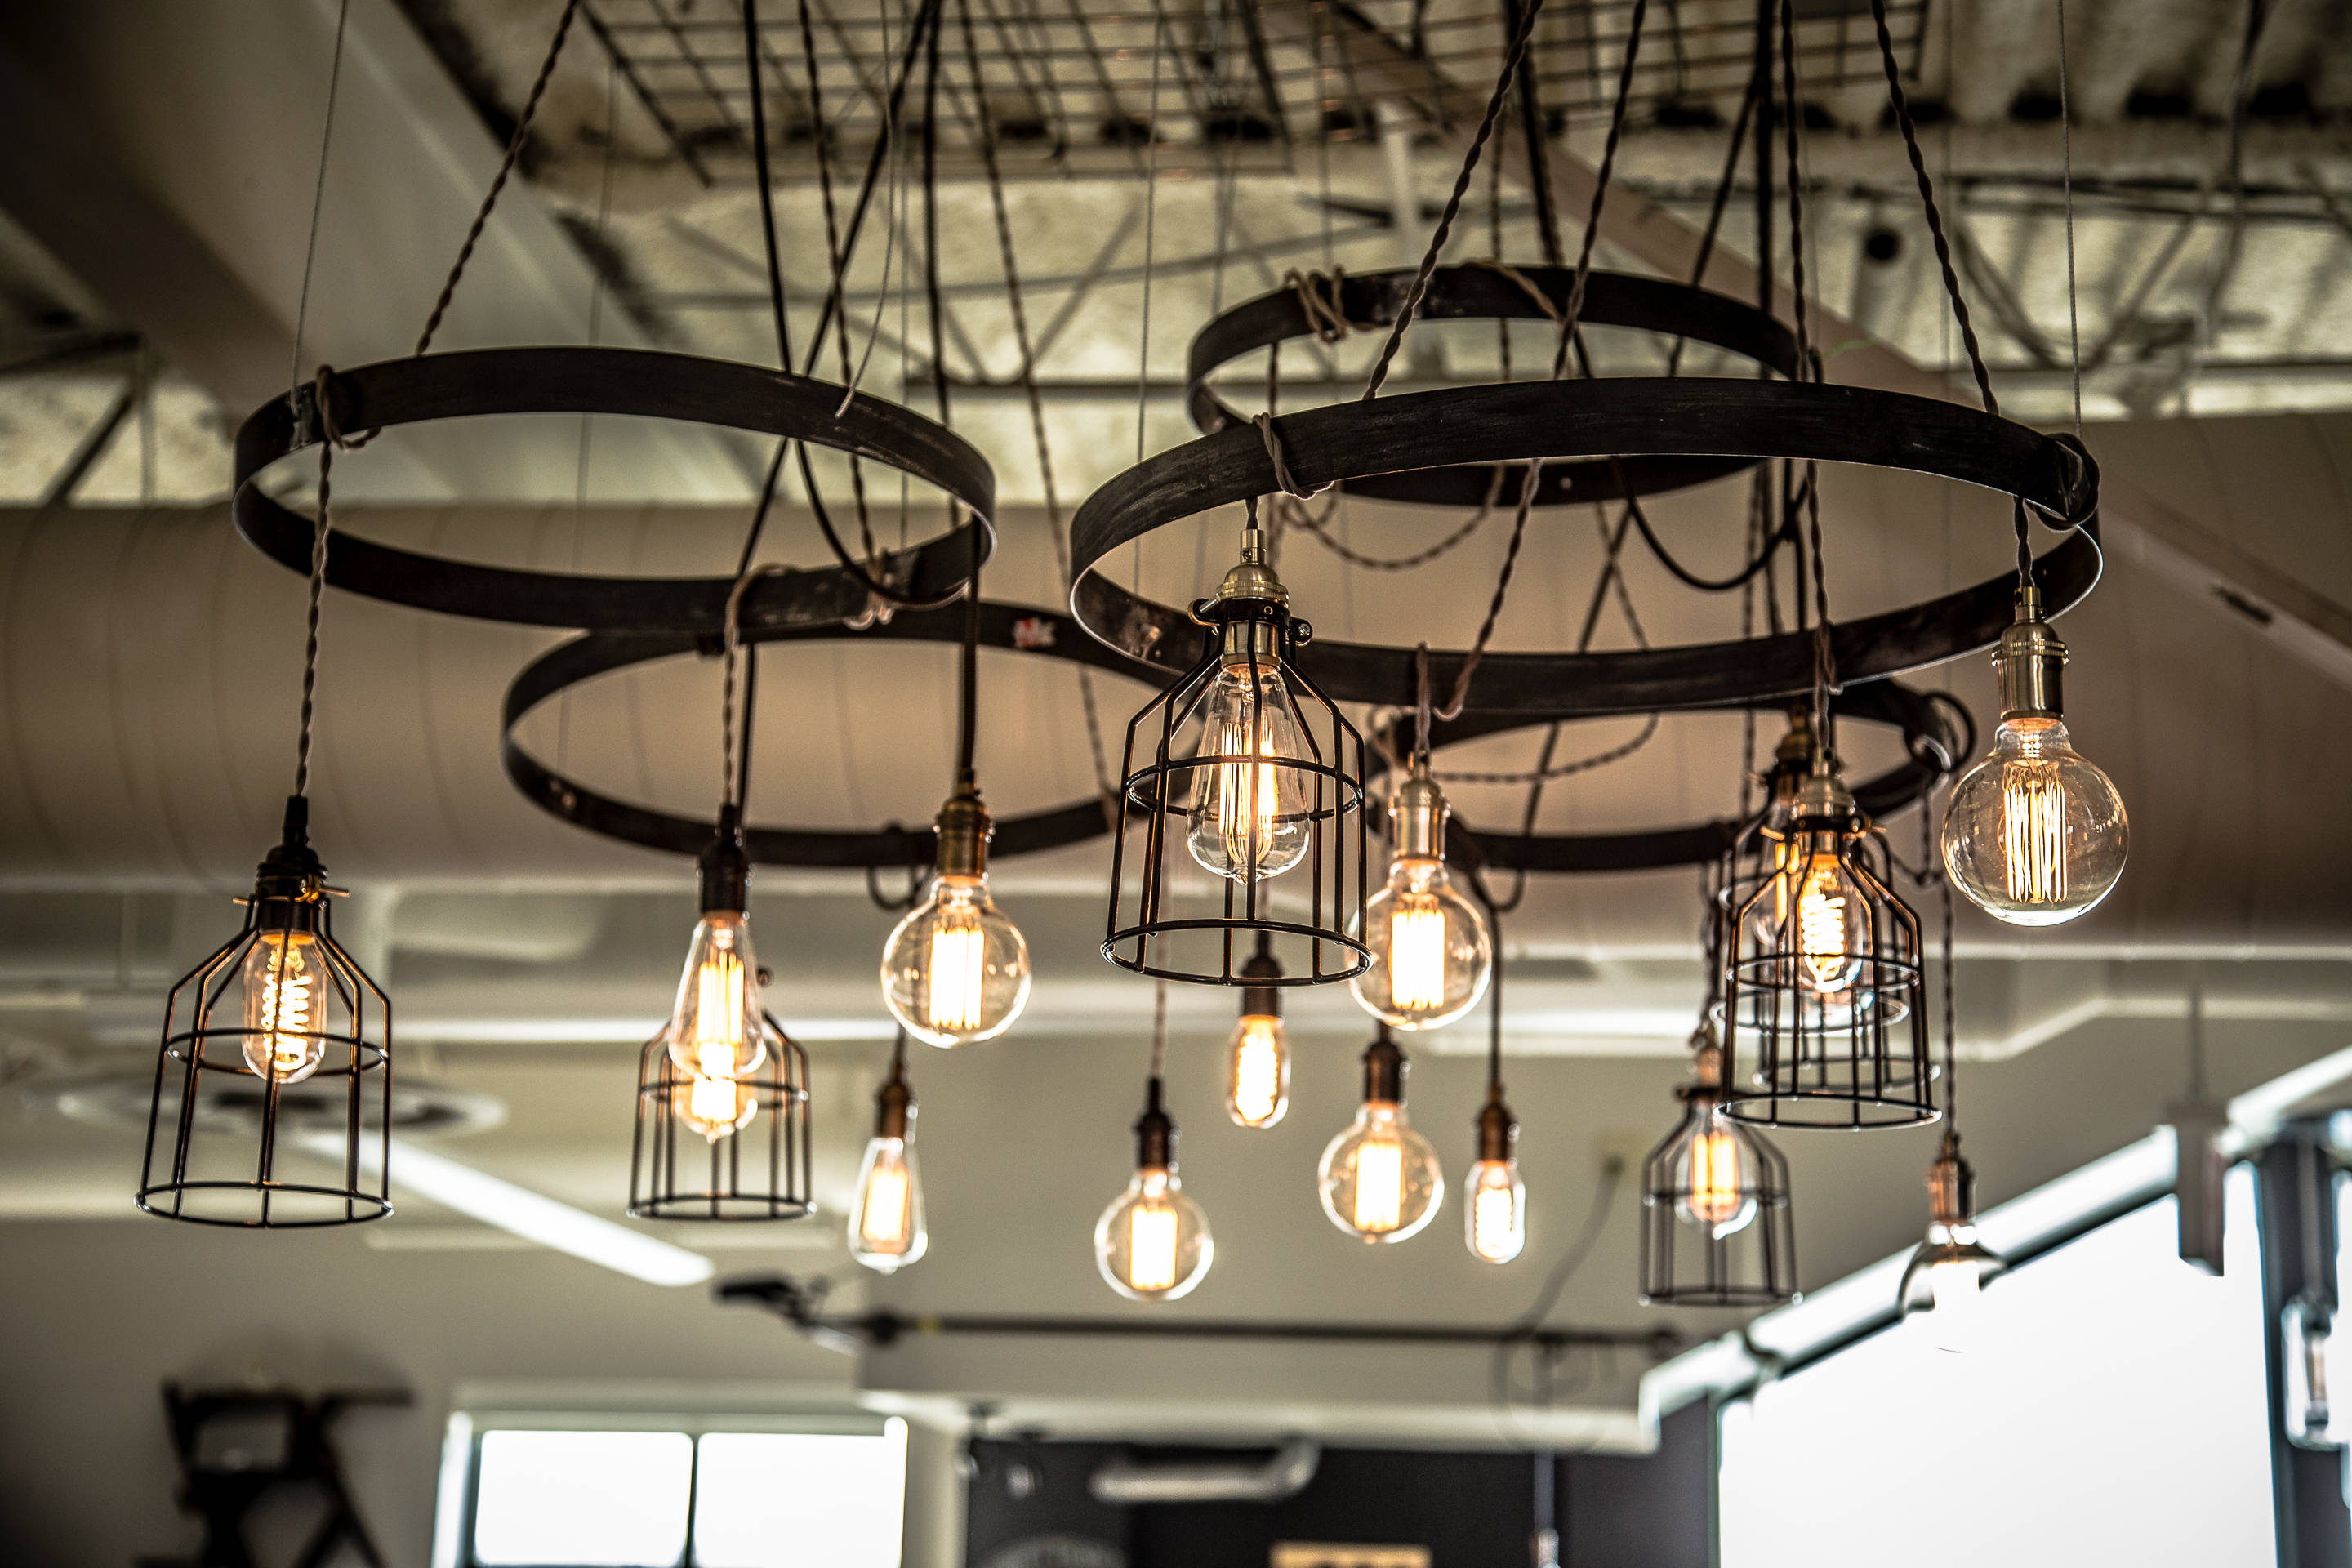 clypd-inc-office-space-in-somerville-ma-after-pic-16-pendants-hung-from-4-steel-hoops-mix-of-bulbs-and-cages-photos-by-nate-design-by-stephanie-6.jpg